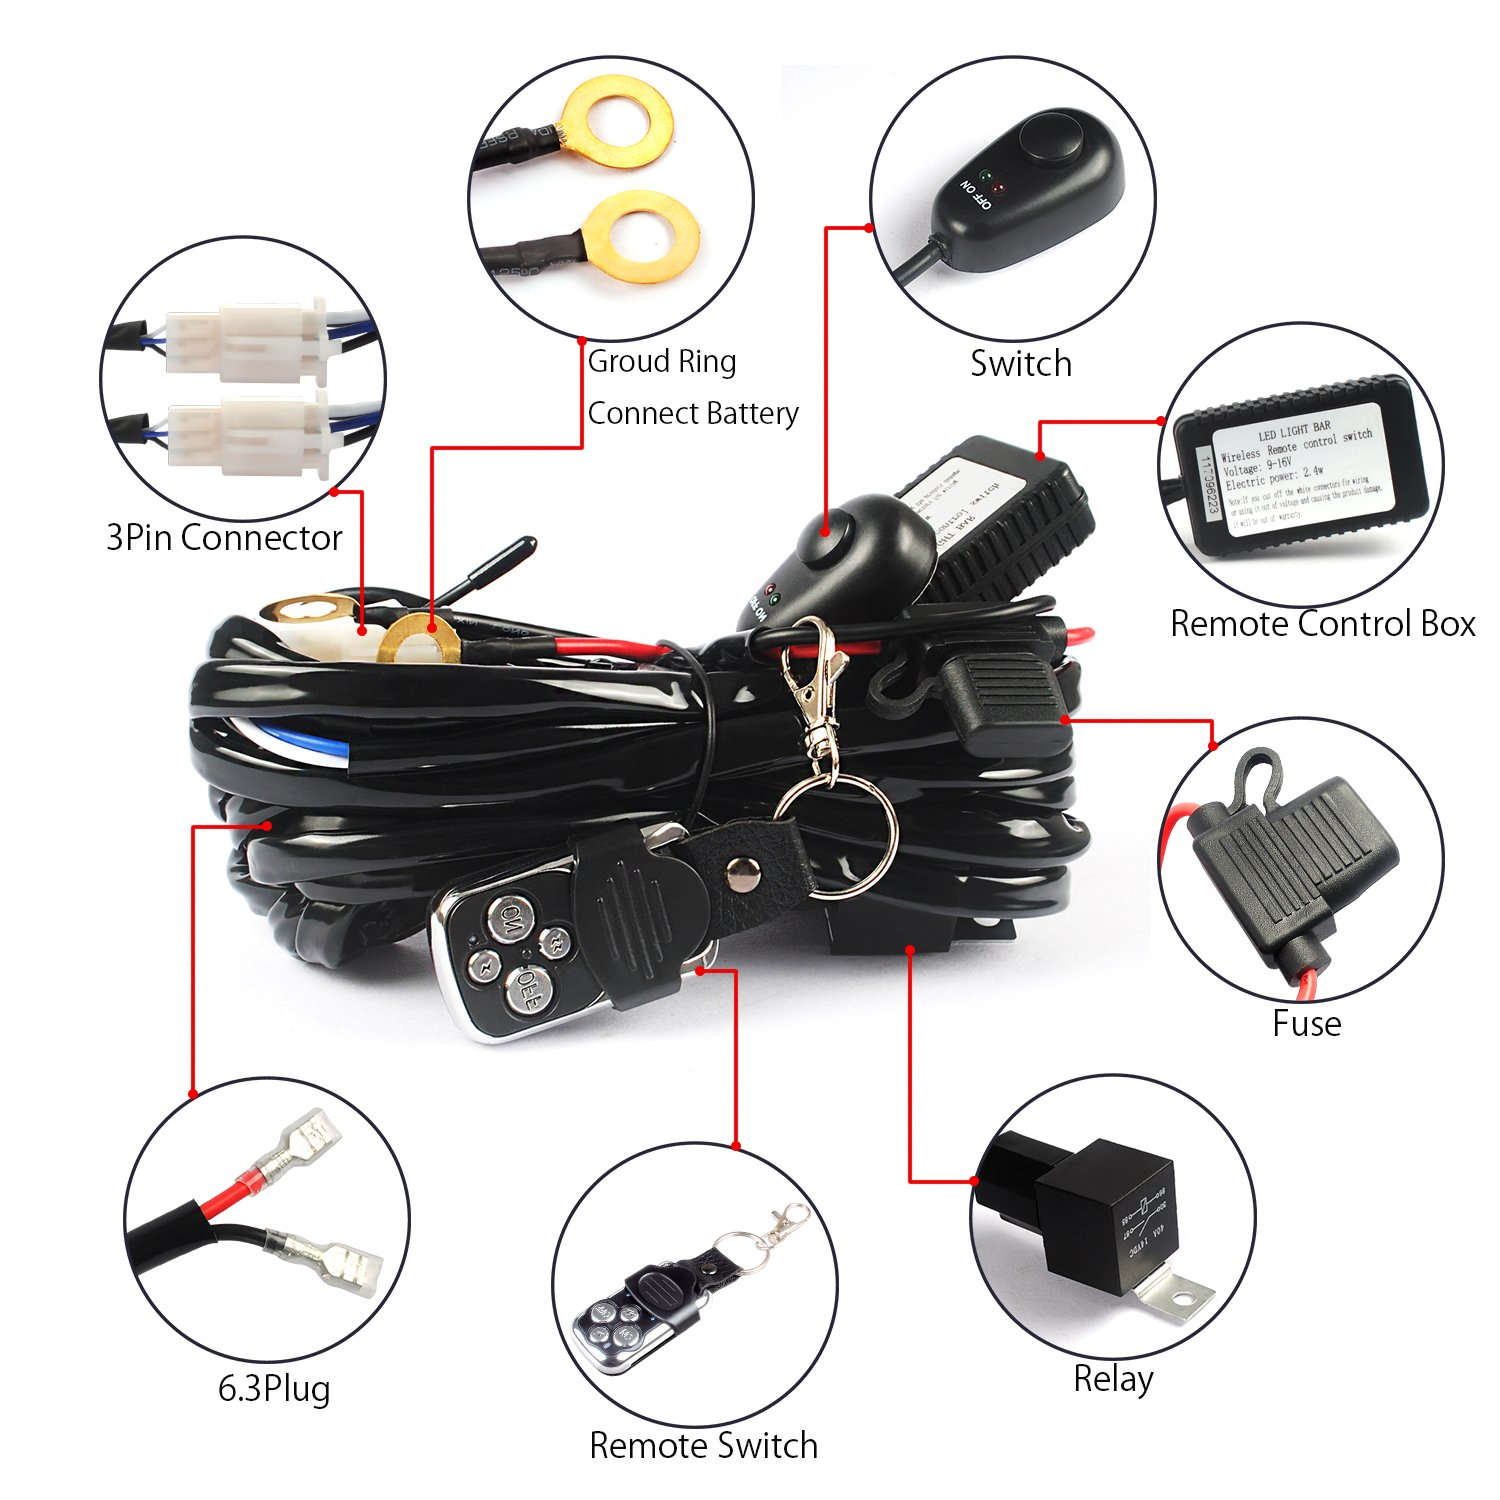 Iring Led Light Bar Relay Mediatown 360 Wiring Harness With Switch And Single Channel Dt Amazoncom Jhe Remote Kit Control